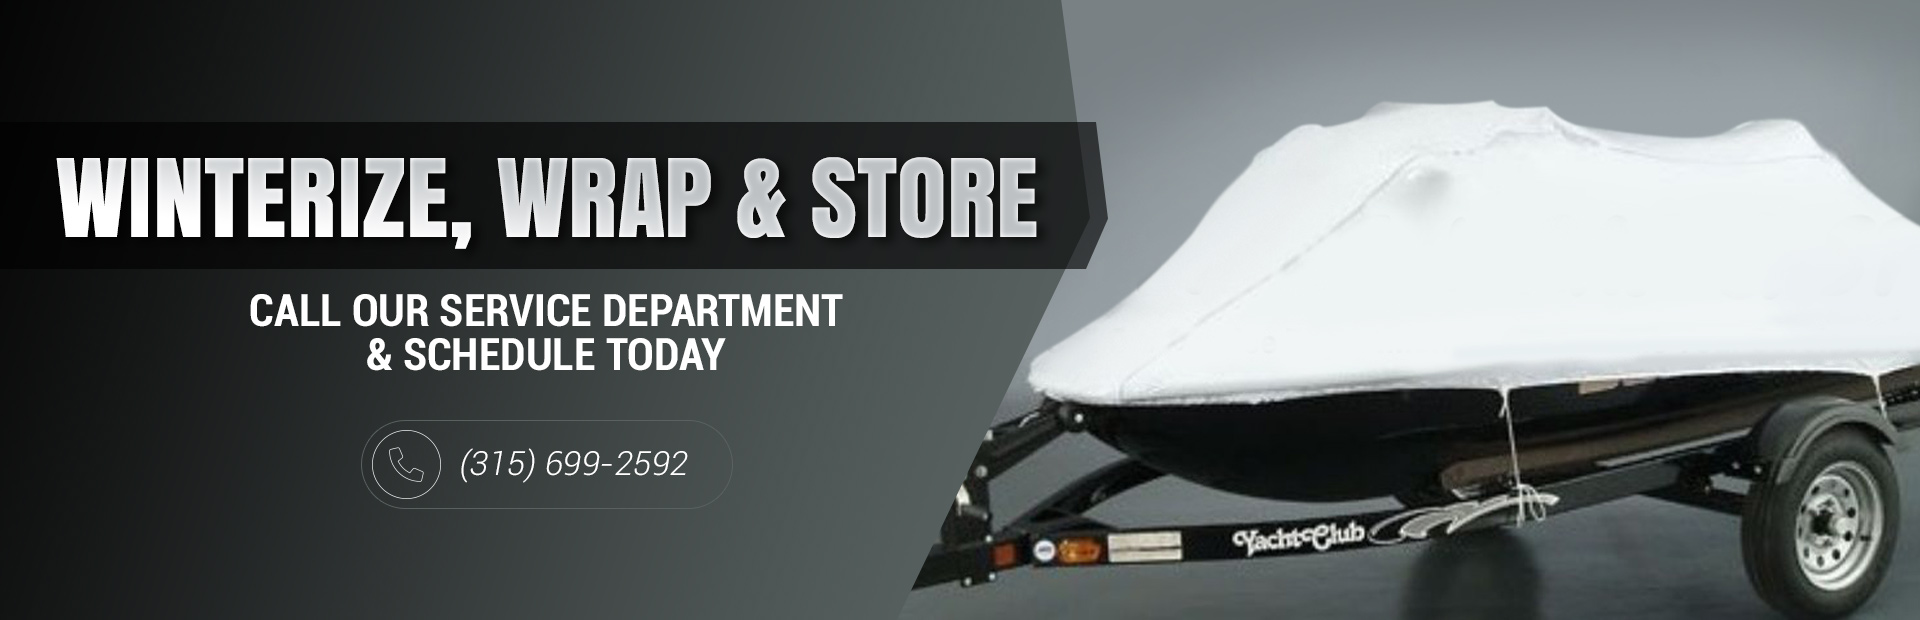 Winterize, wrap & store! Click here for more info!